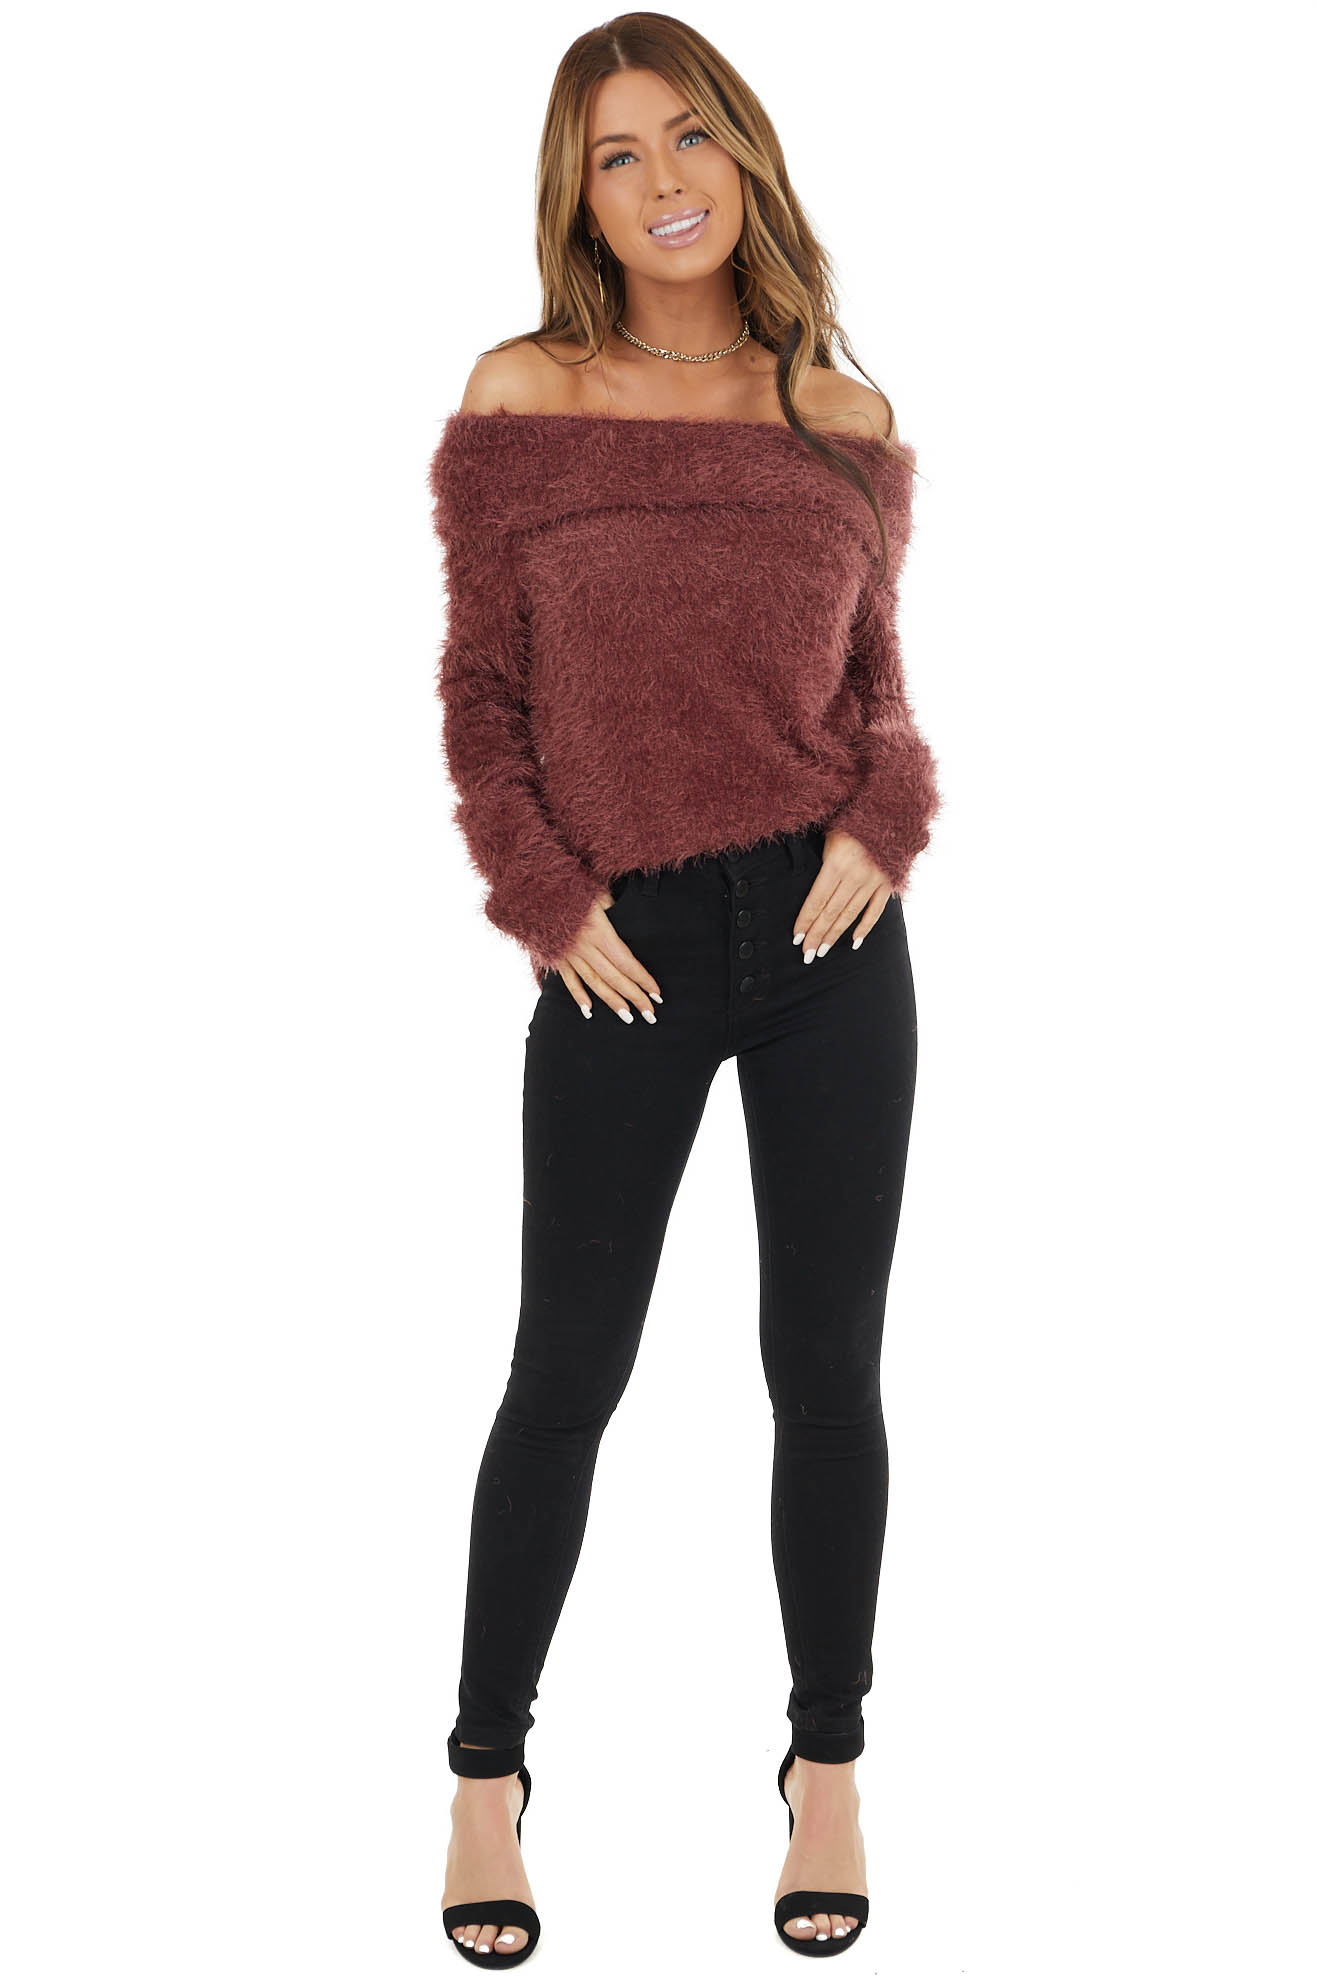 Mahogany Fuzzy Knit Long Sleeve Off the Shoulder Sweater